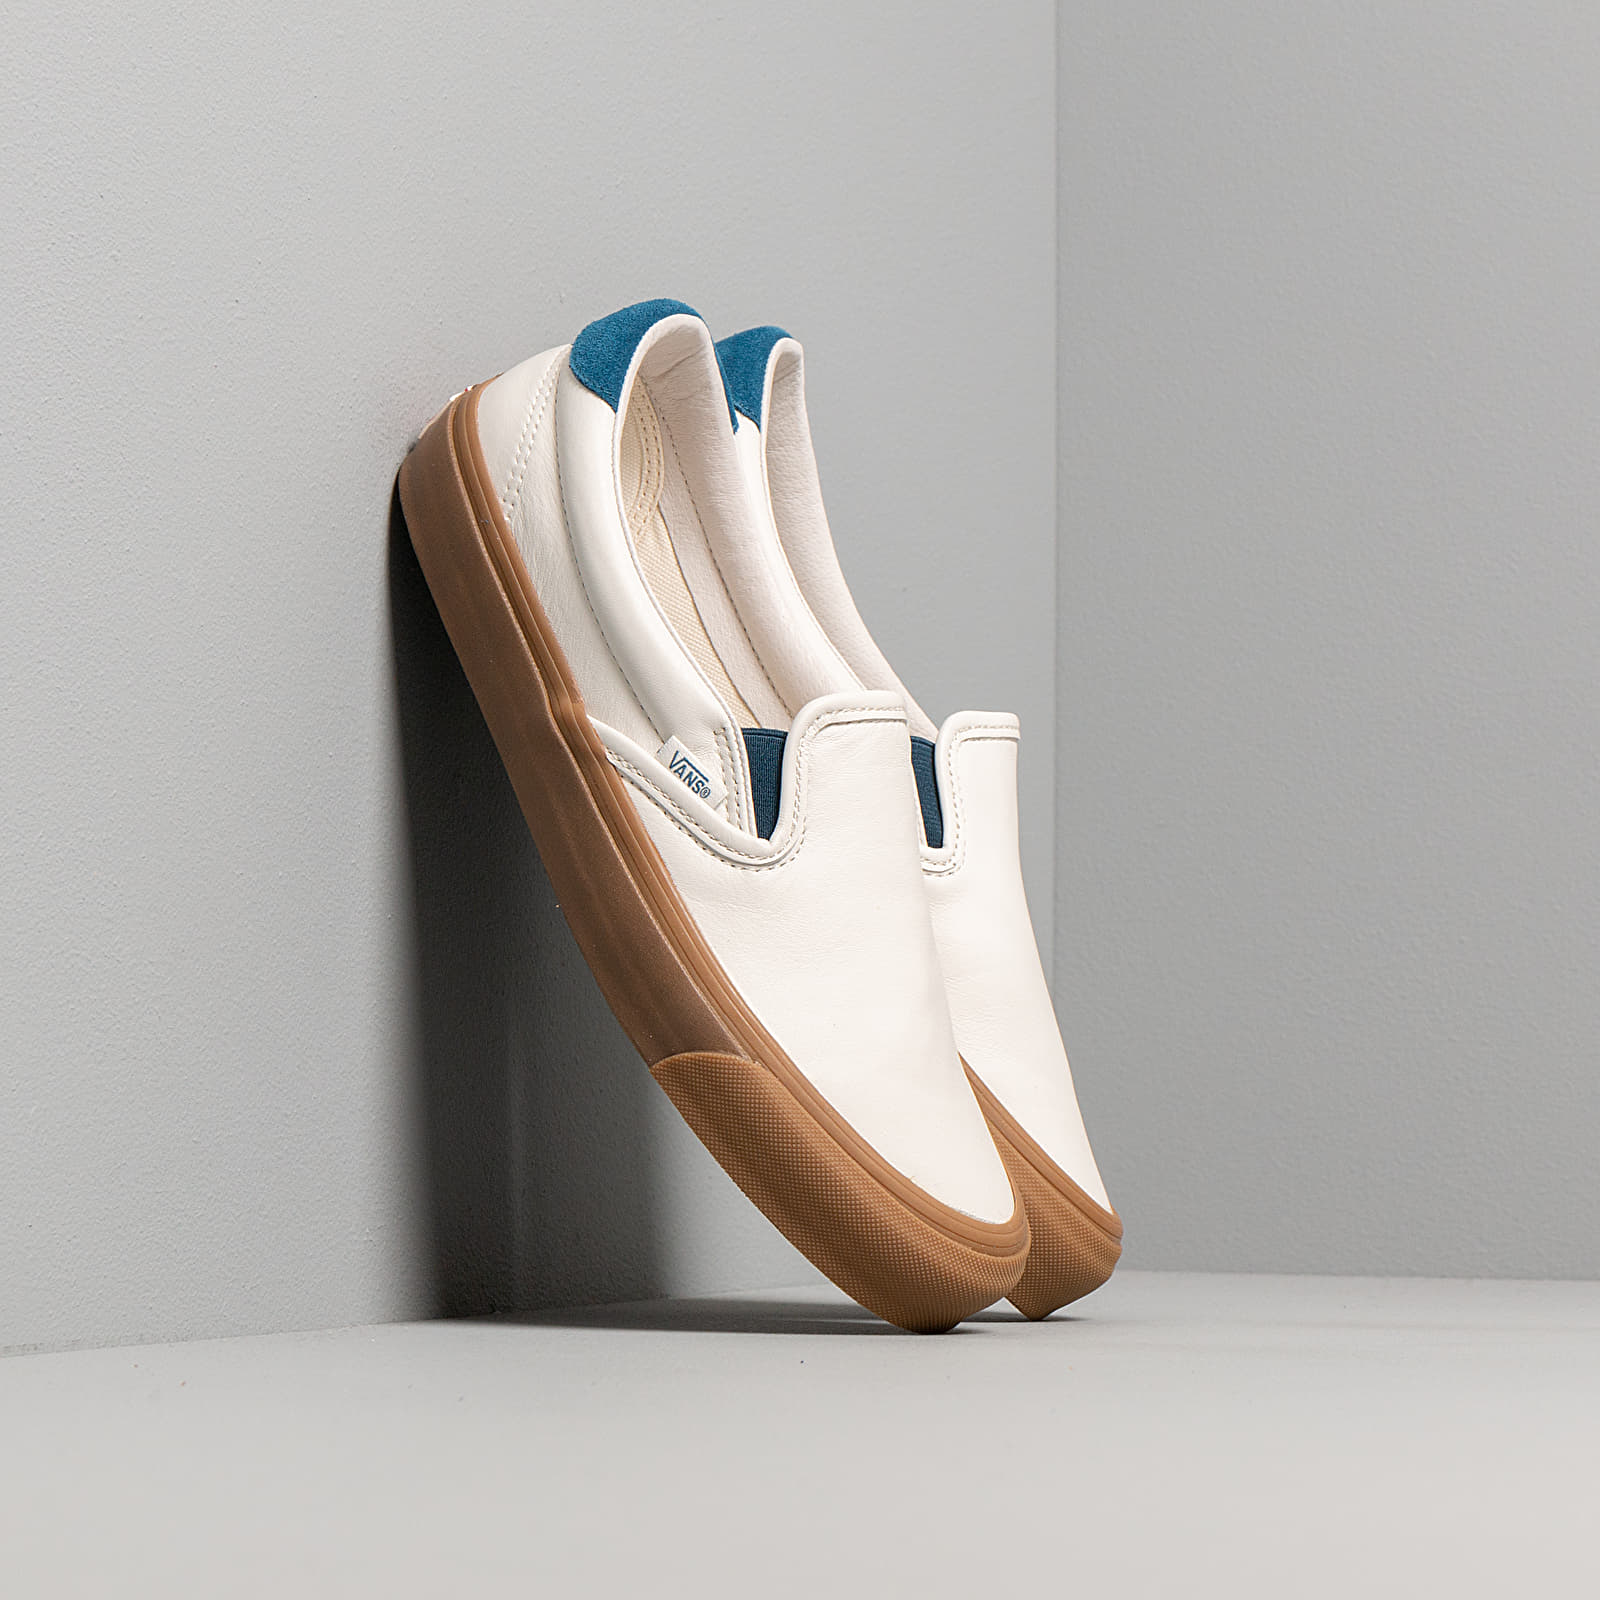 Vans OG Slip-On 59 LX (Leather/ Suede)